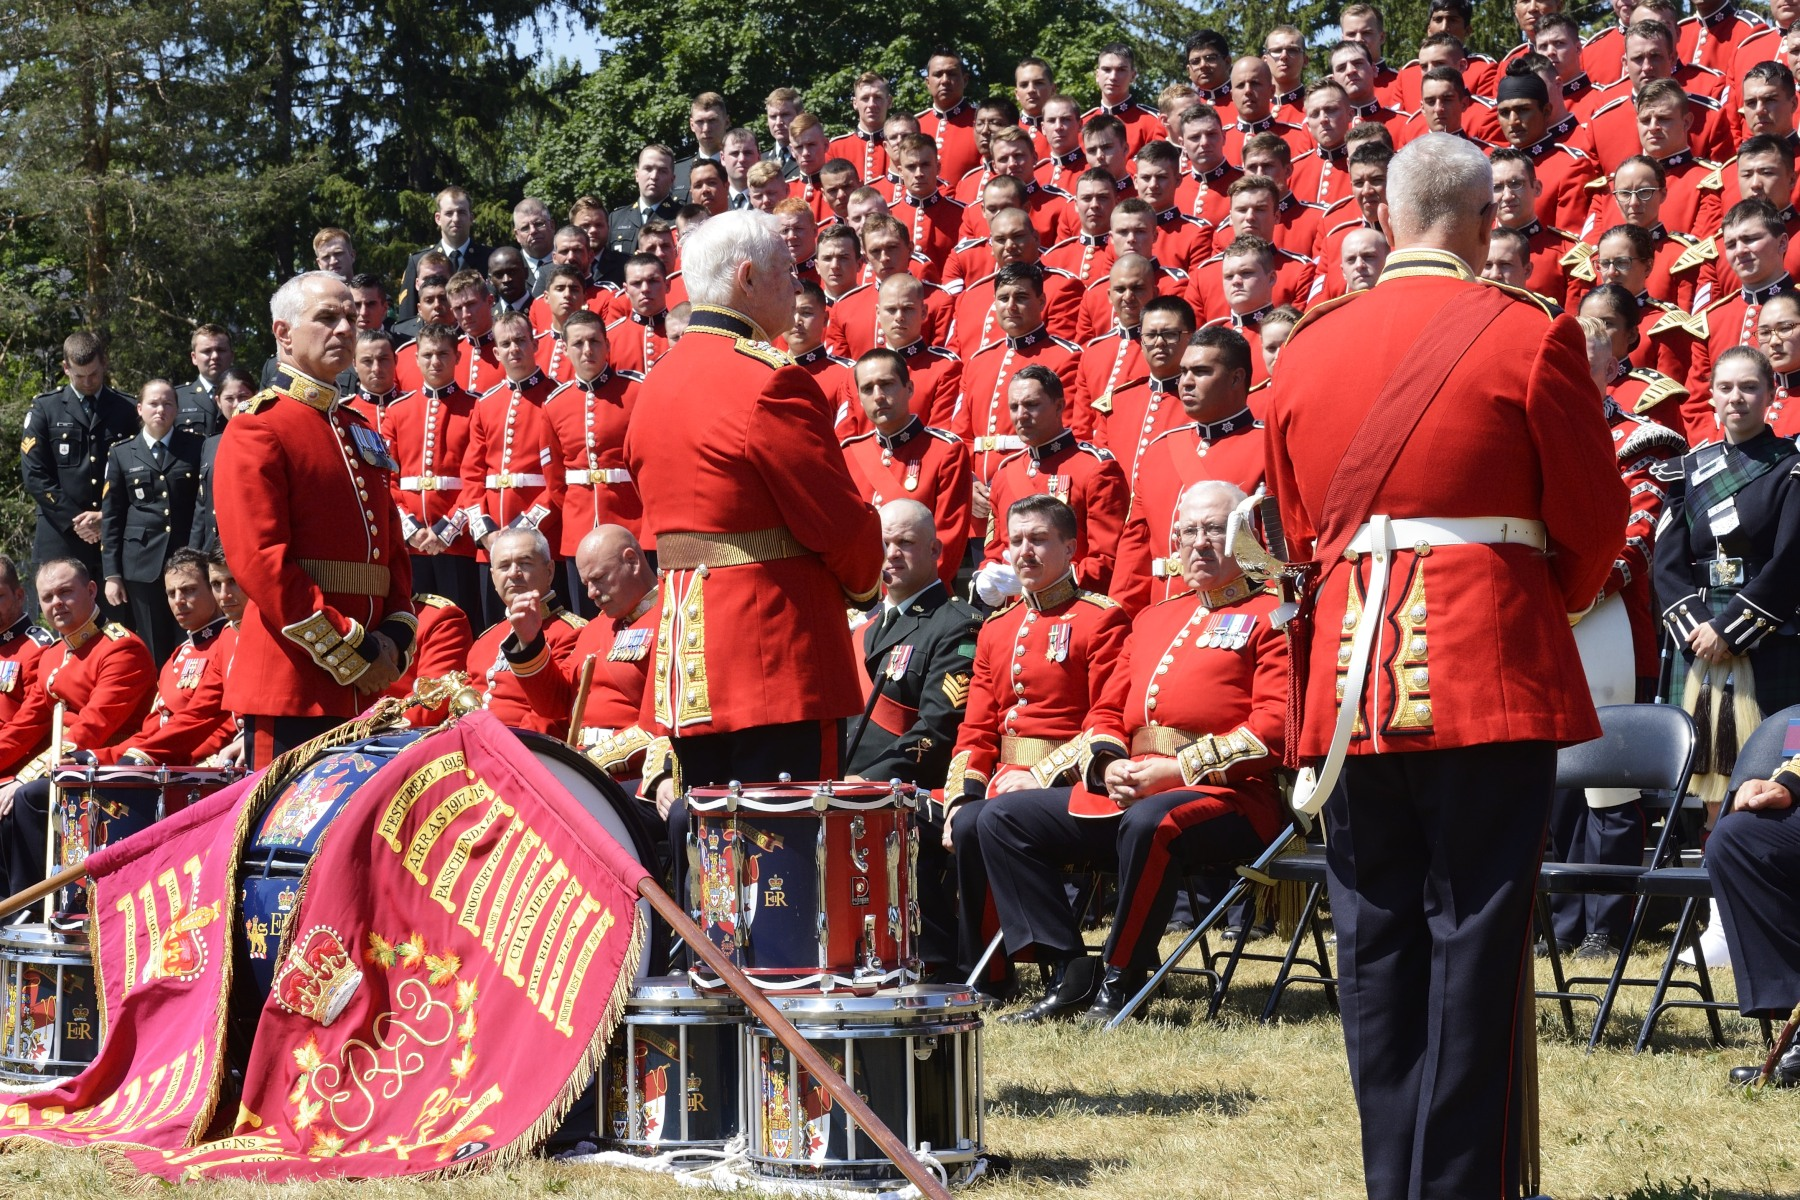 The Ceremonial Guard was established by the Canadian Armed Forces to plan, prepare, and execute Public Duties in the Nation's Capital during the summer.